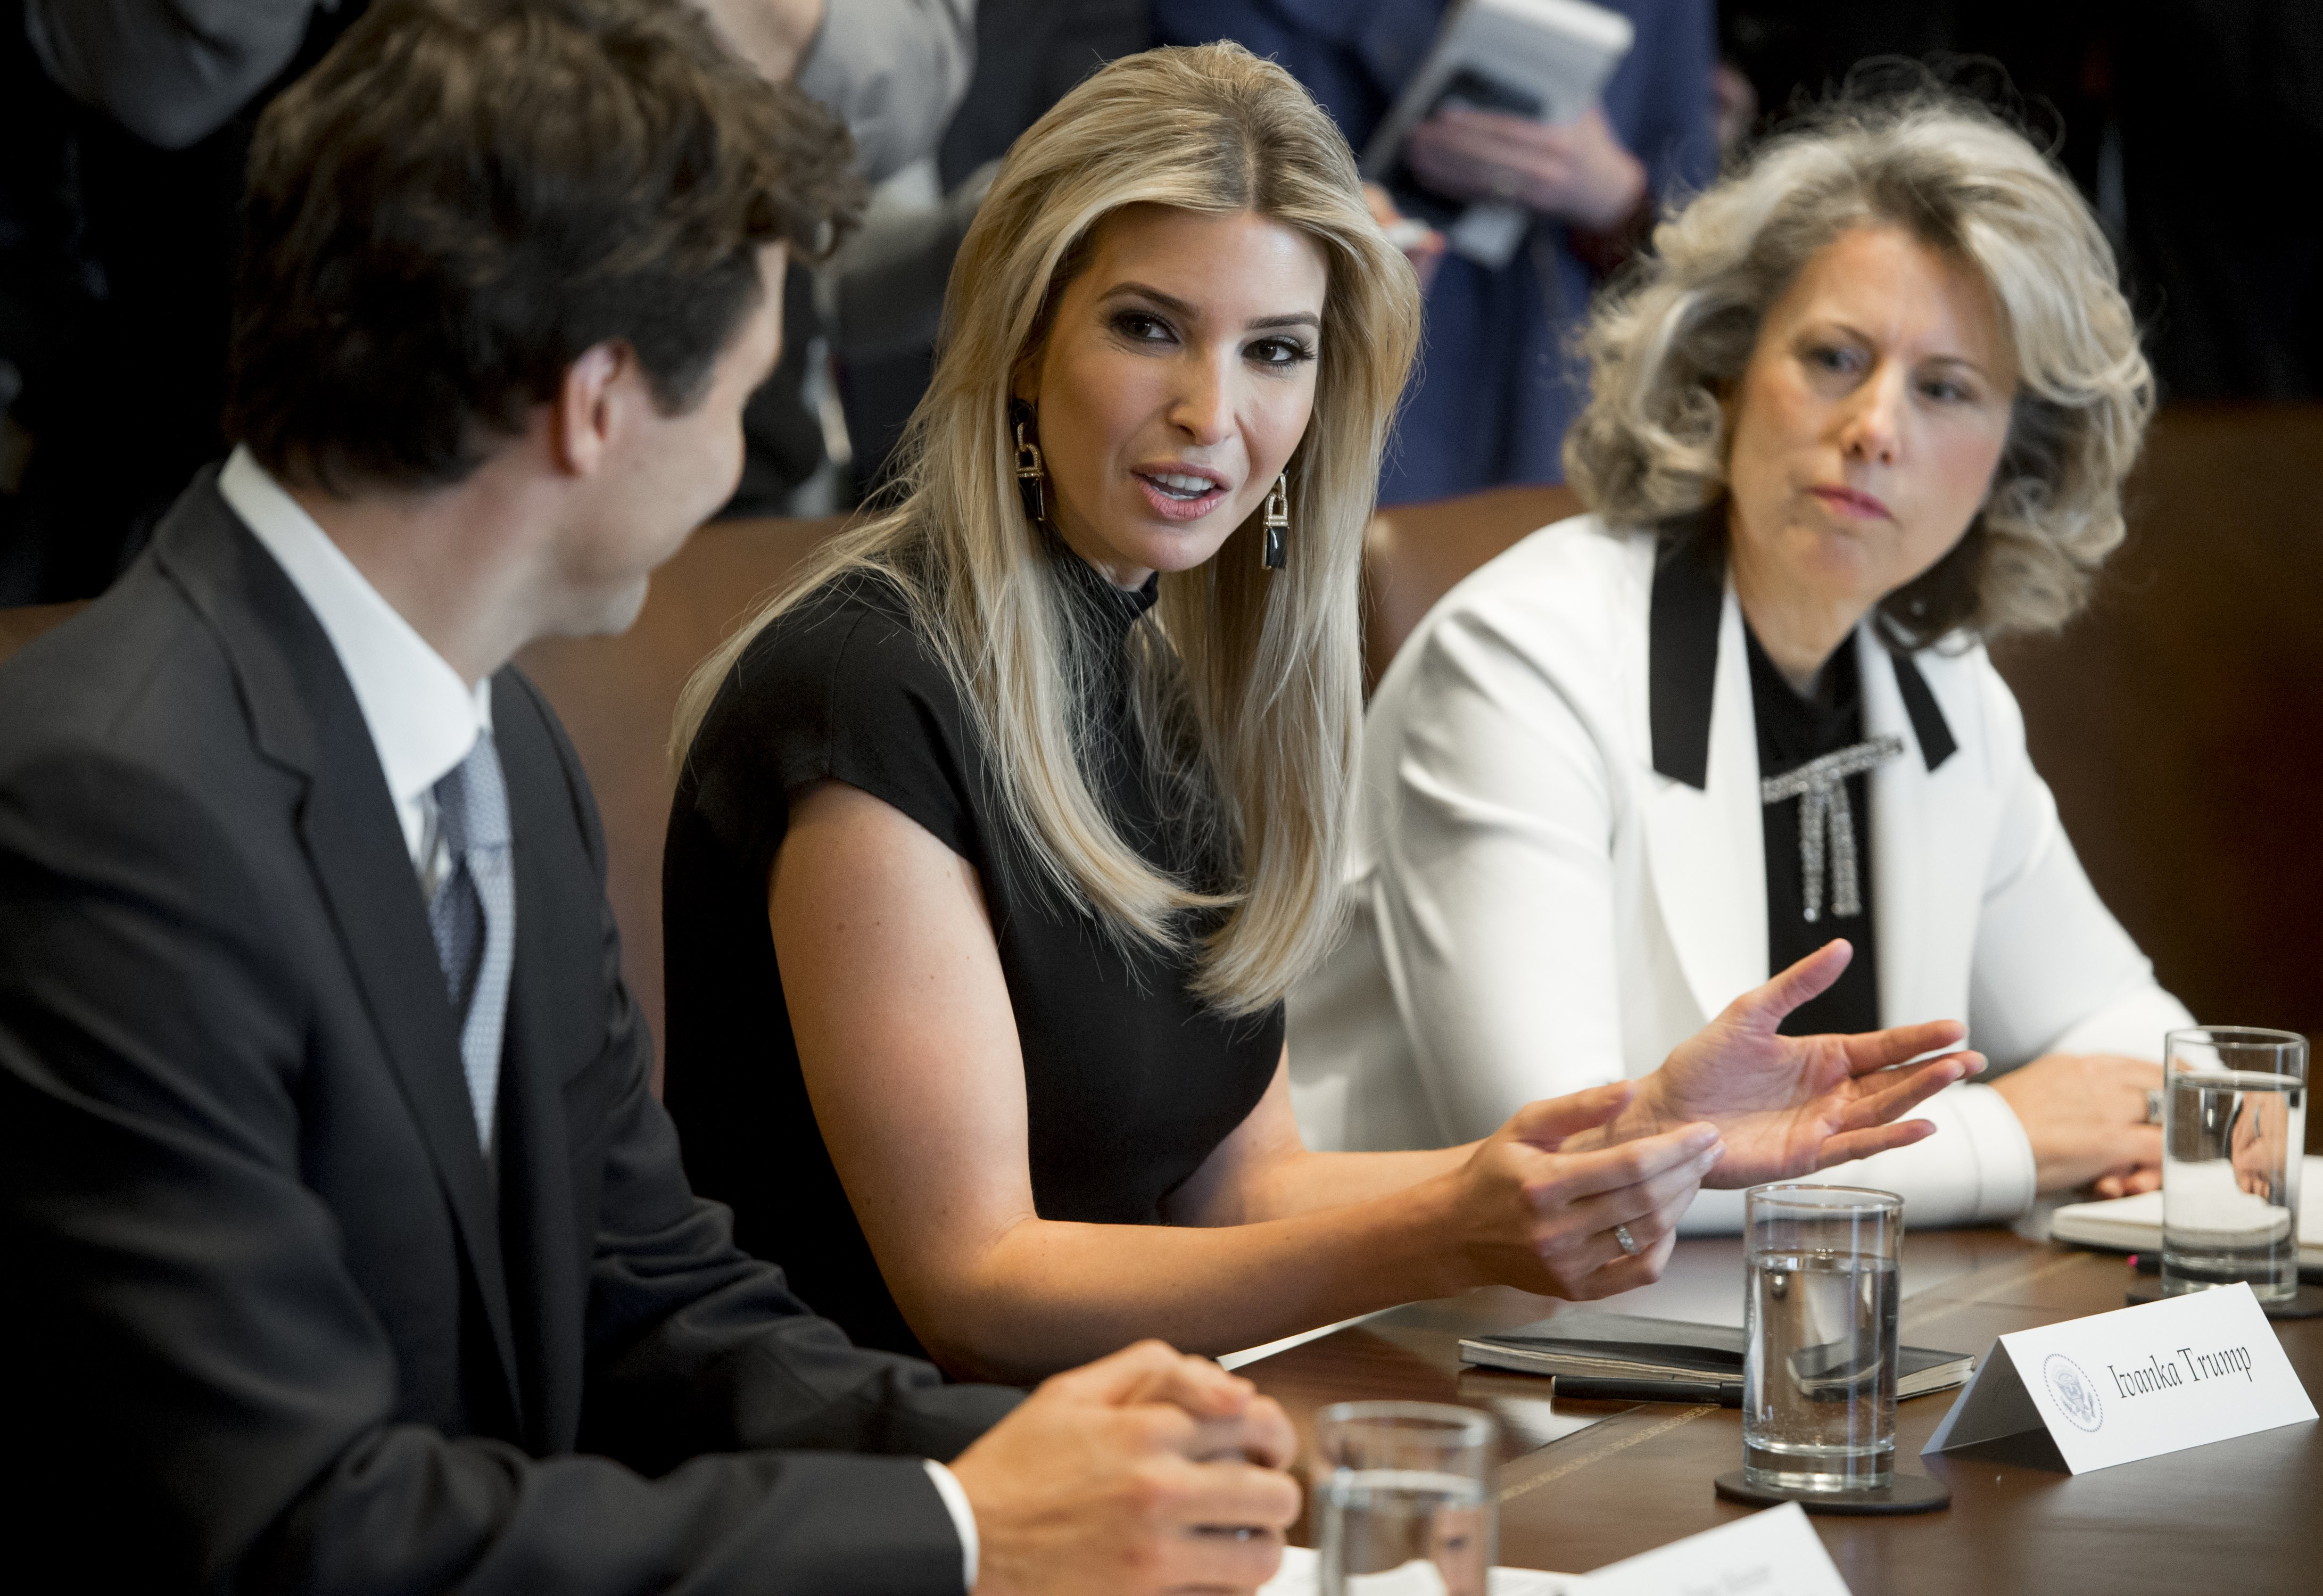 Canadian Prime Minister Justin Trudeau speaks alongside Ivanka Trump (C), daughter of US President Donald Trump, and Dawn Farrell (R), President and CEO of TransAlta Corporation, during a roundtable discussion on women entrepreneurs and business leaders in the Cabinet Room of the White House in Washington, DC, February 13, 2017. SAUL LOEB/AFP/Getty Images